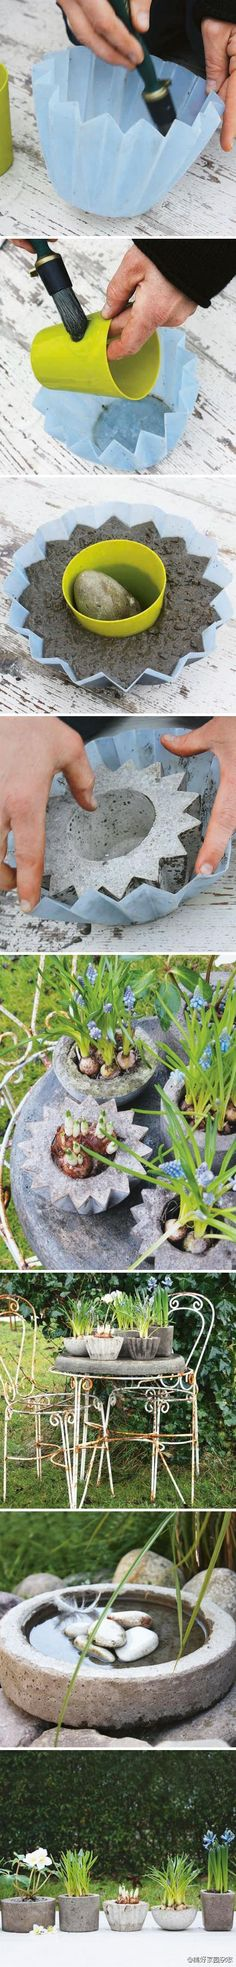 make your own planters #diy #cement